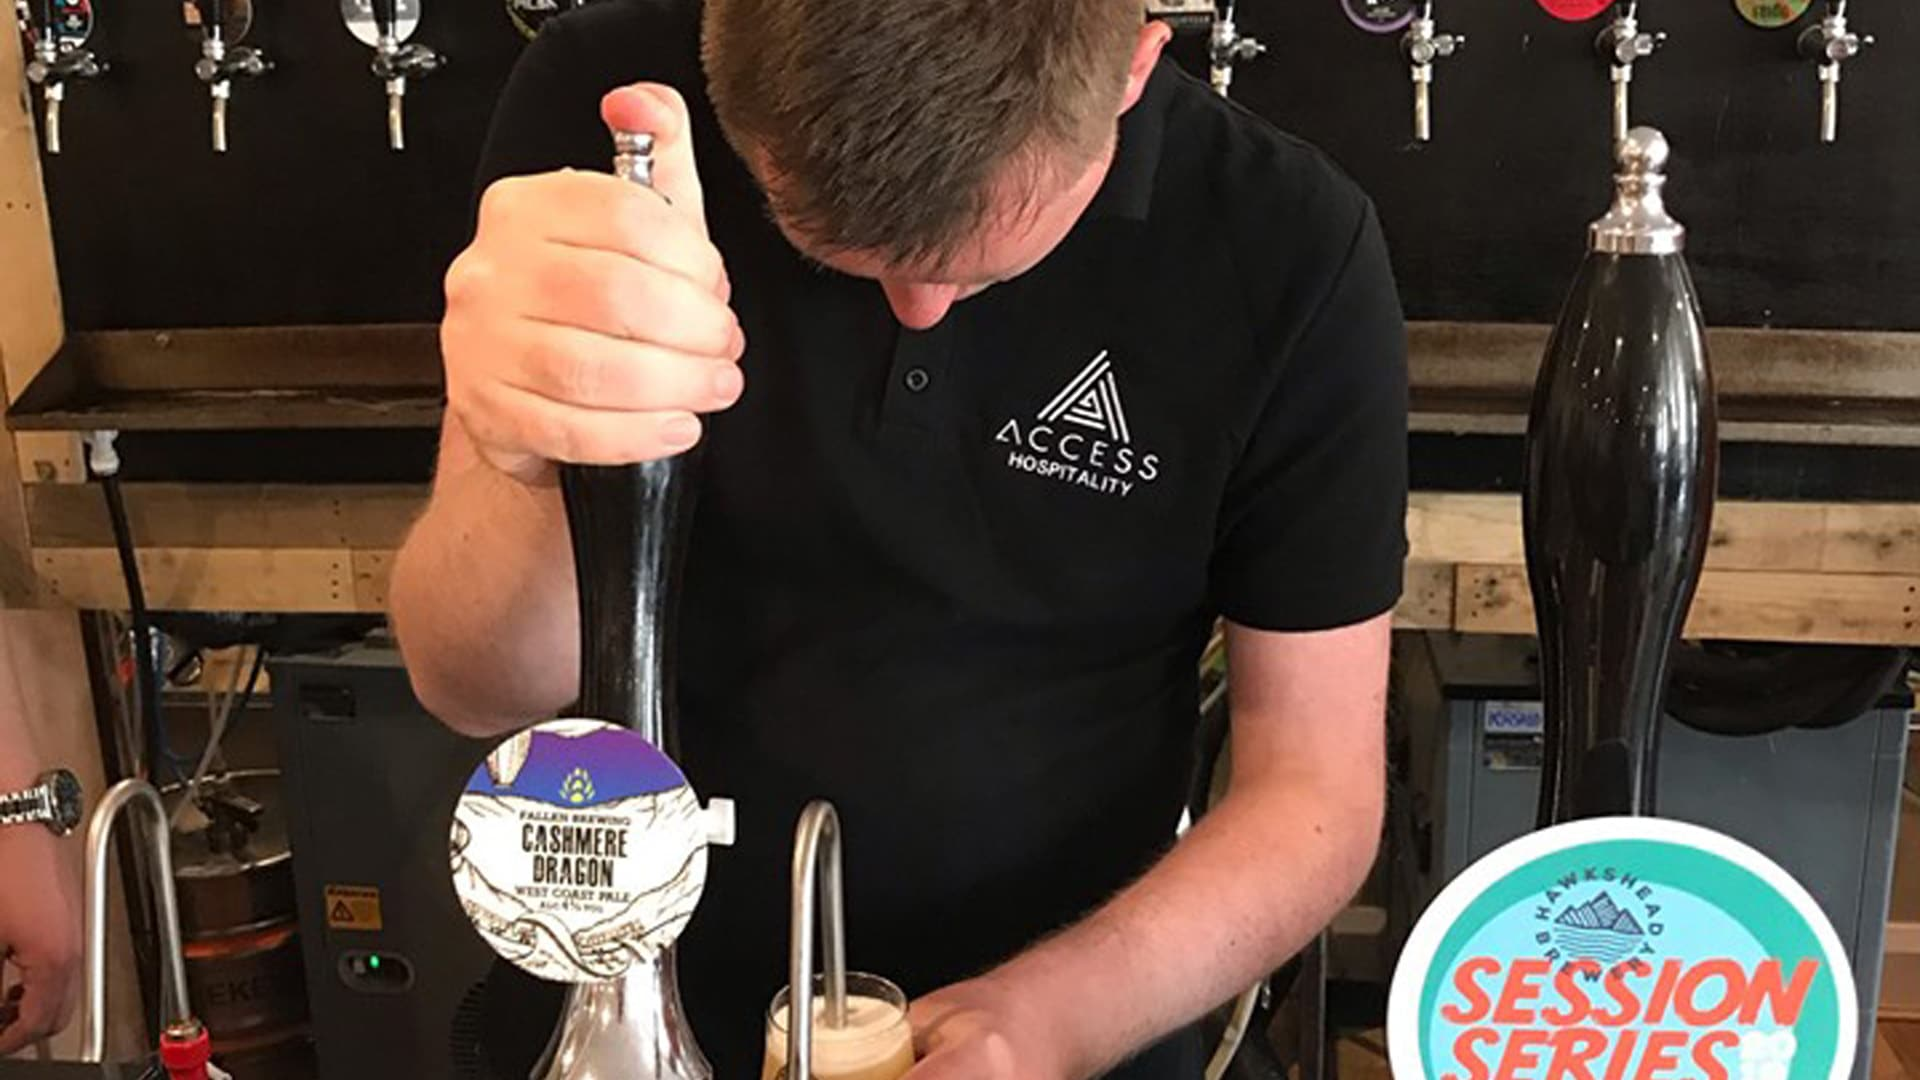 Pennine Magpies member wearing an Access Hospitality t-shirt, standing behind a bar, pulling a pint